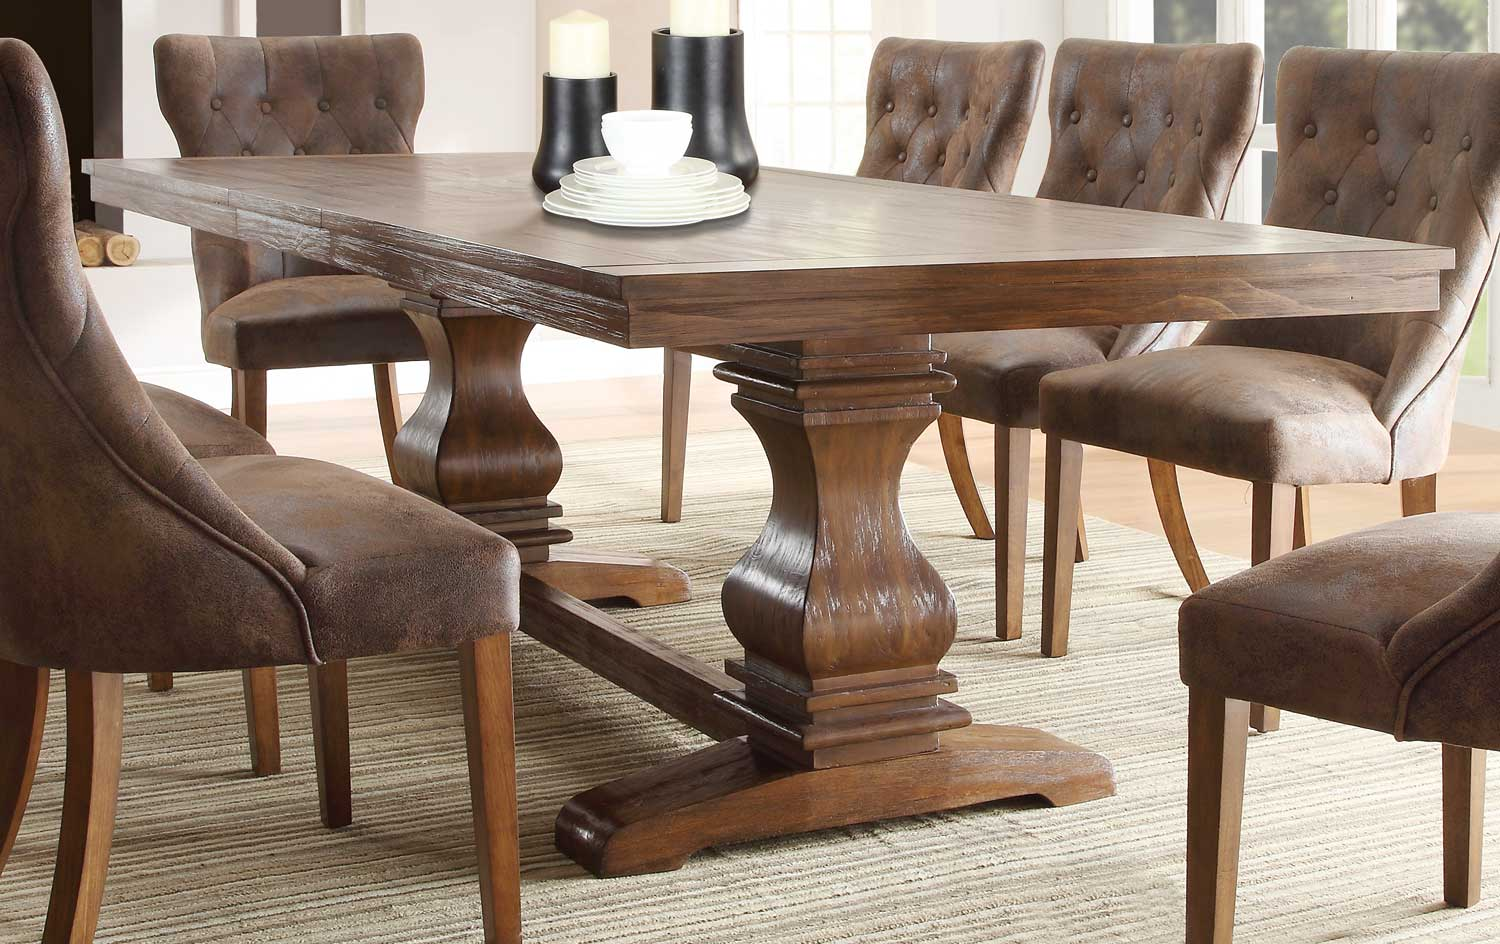 Homelegance Marie Louise Dining Table